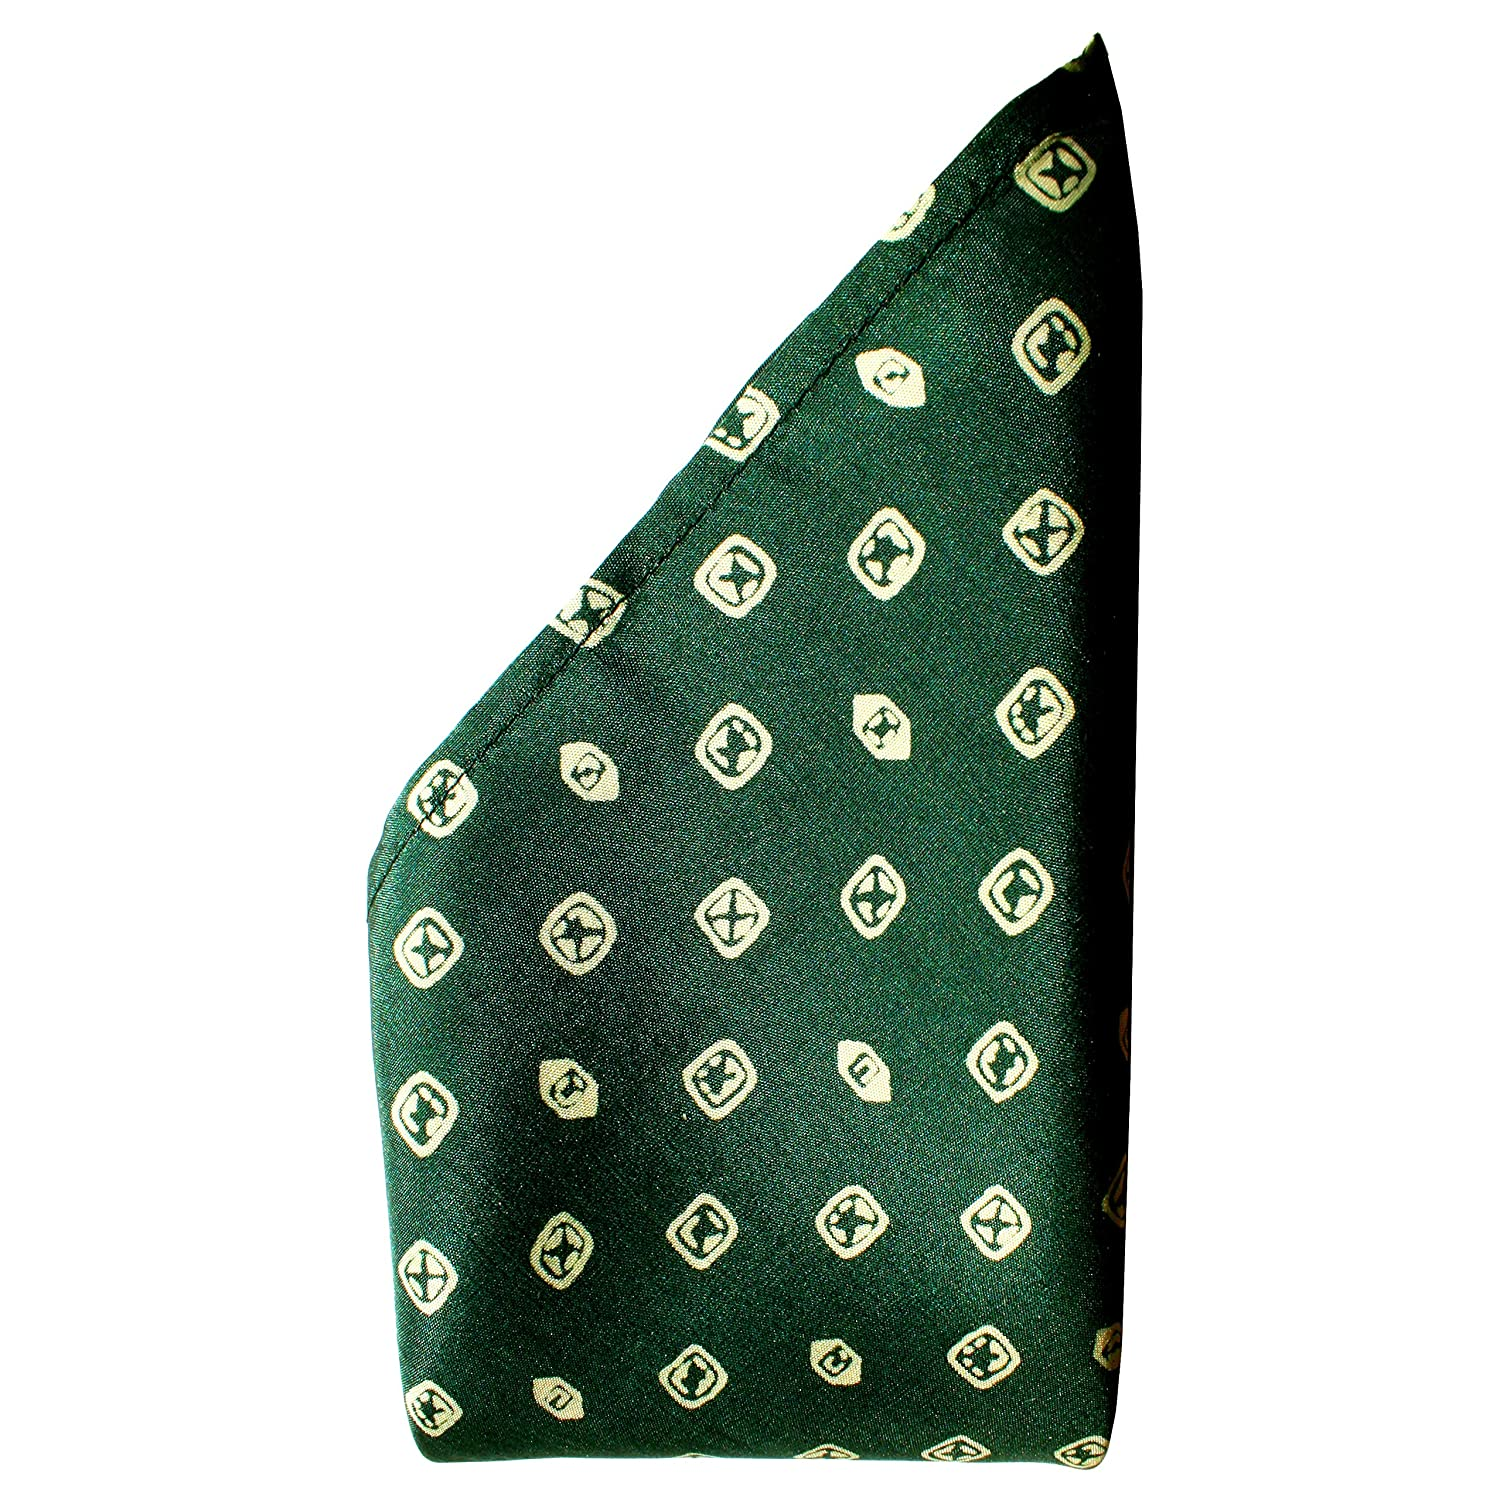 Deep Green Cufflinks Silk Pocket Square Full-Sized 16x16